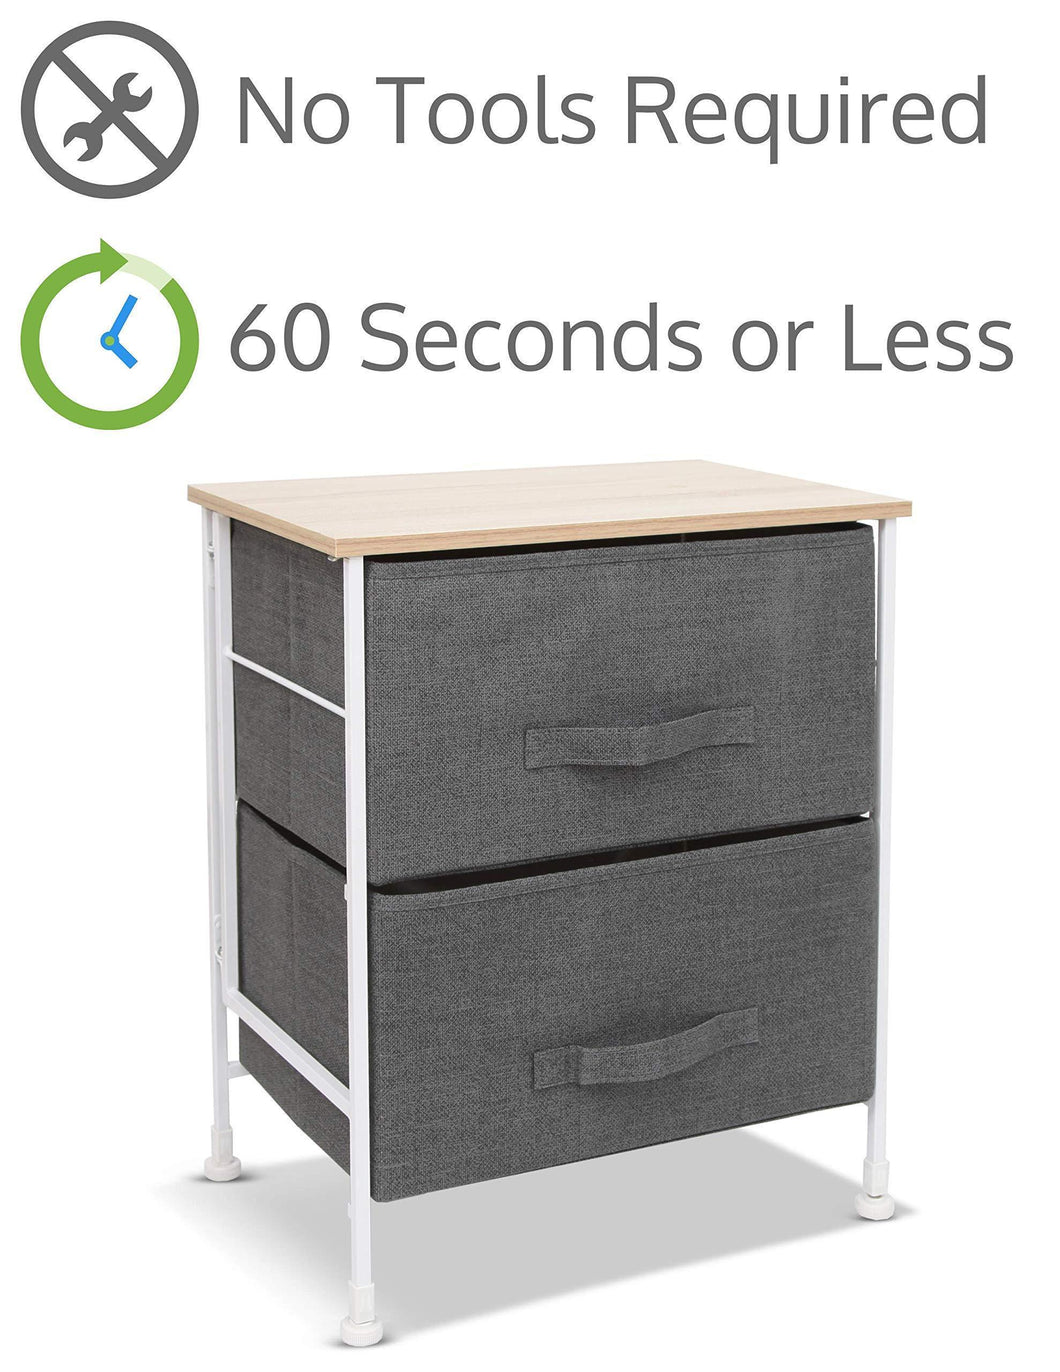 Luxton Home 2 Drawer Storage Organizer - 60 Second Fast Assembly, No Tools Needed, Small Gray Linen Tower Dresser Chest Dorm Room Essential, Closet, Bedroom, Bathroom (2D,Grey)